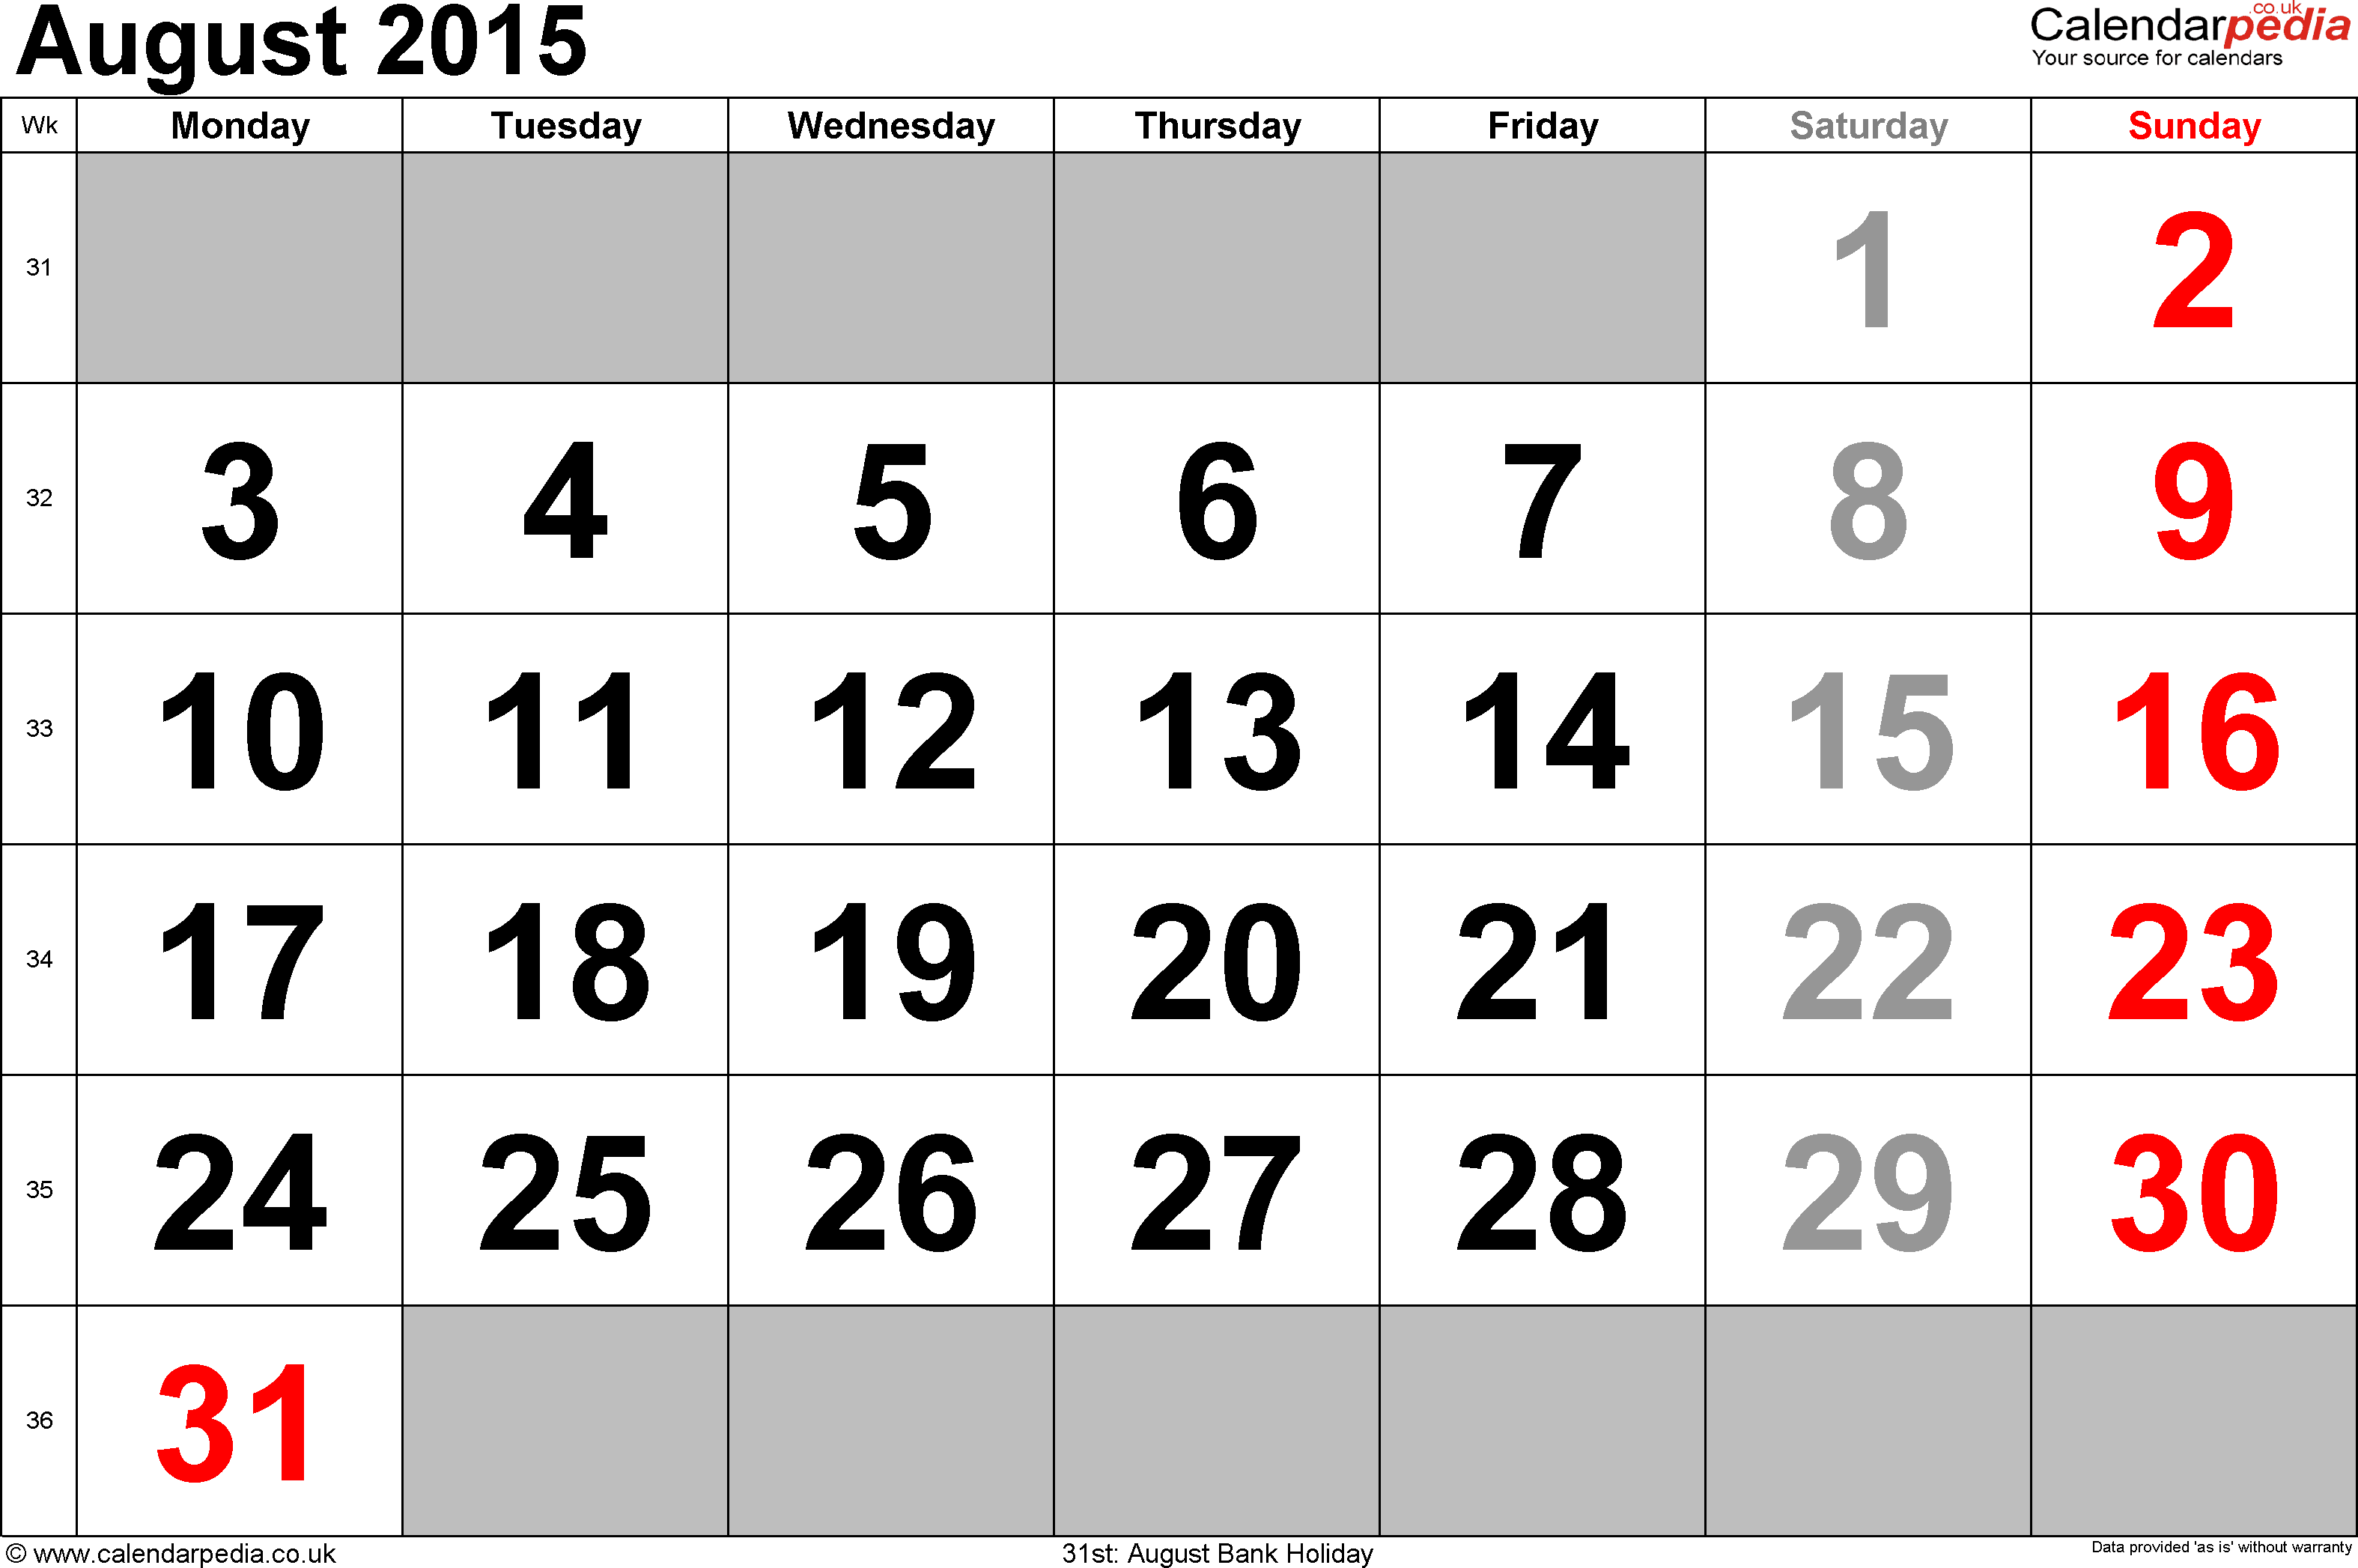 Calendar August 2015, landscape orientation, large numerals, 1 page, with UK bank holidays and week numbers